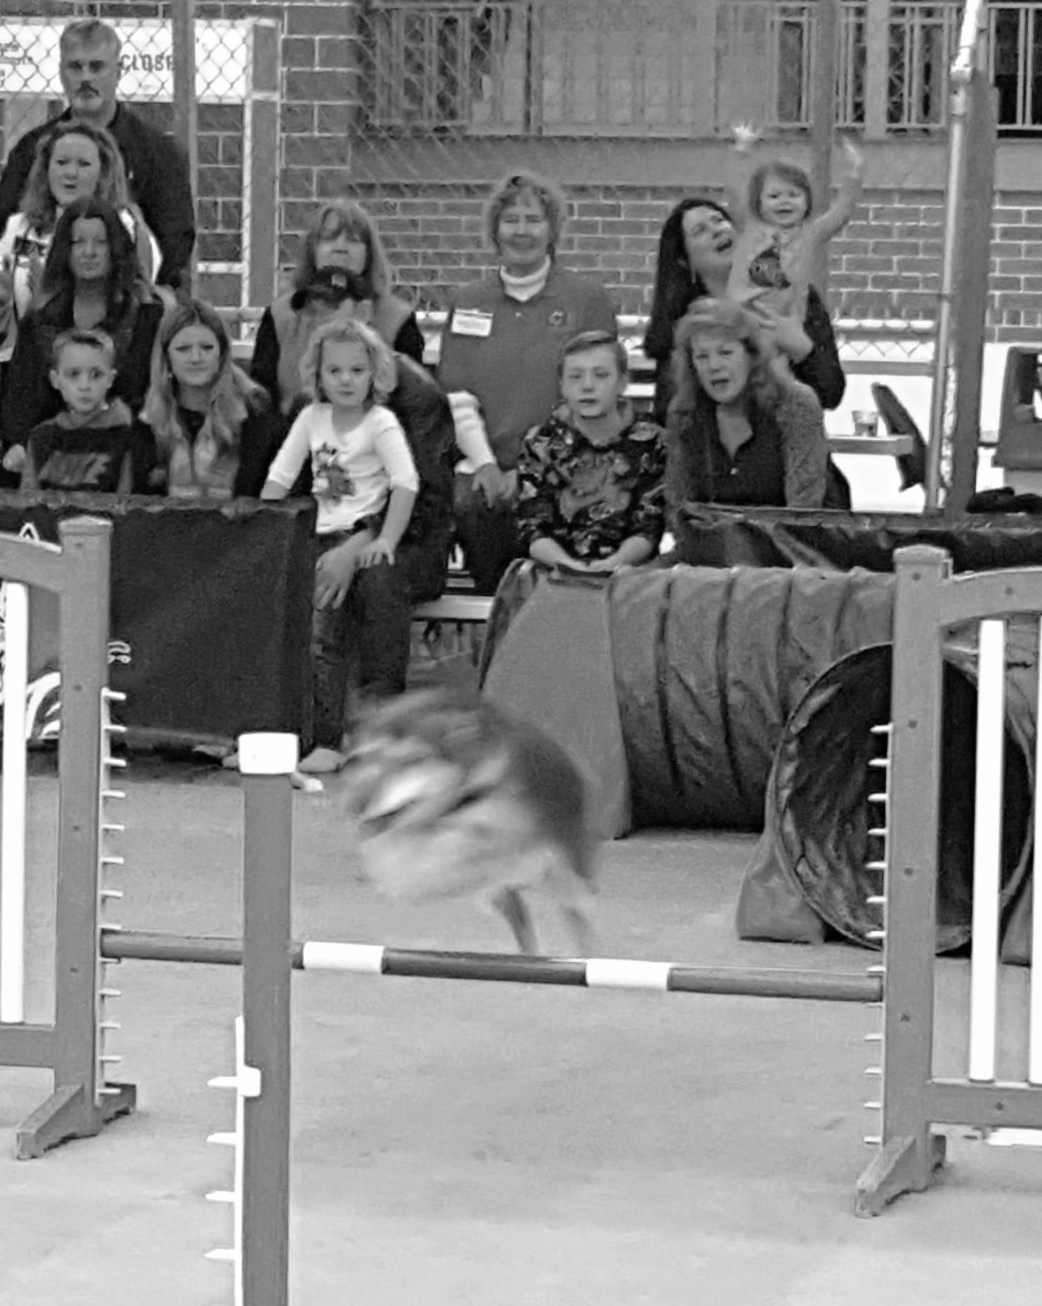 Henrik blazes through the agility course, and the crowd goes wild!